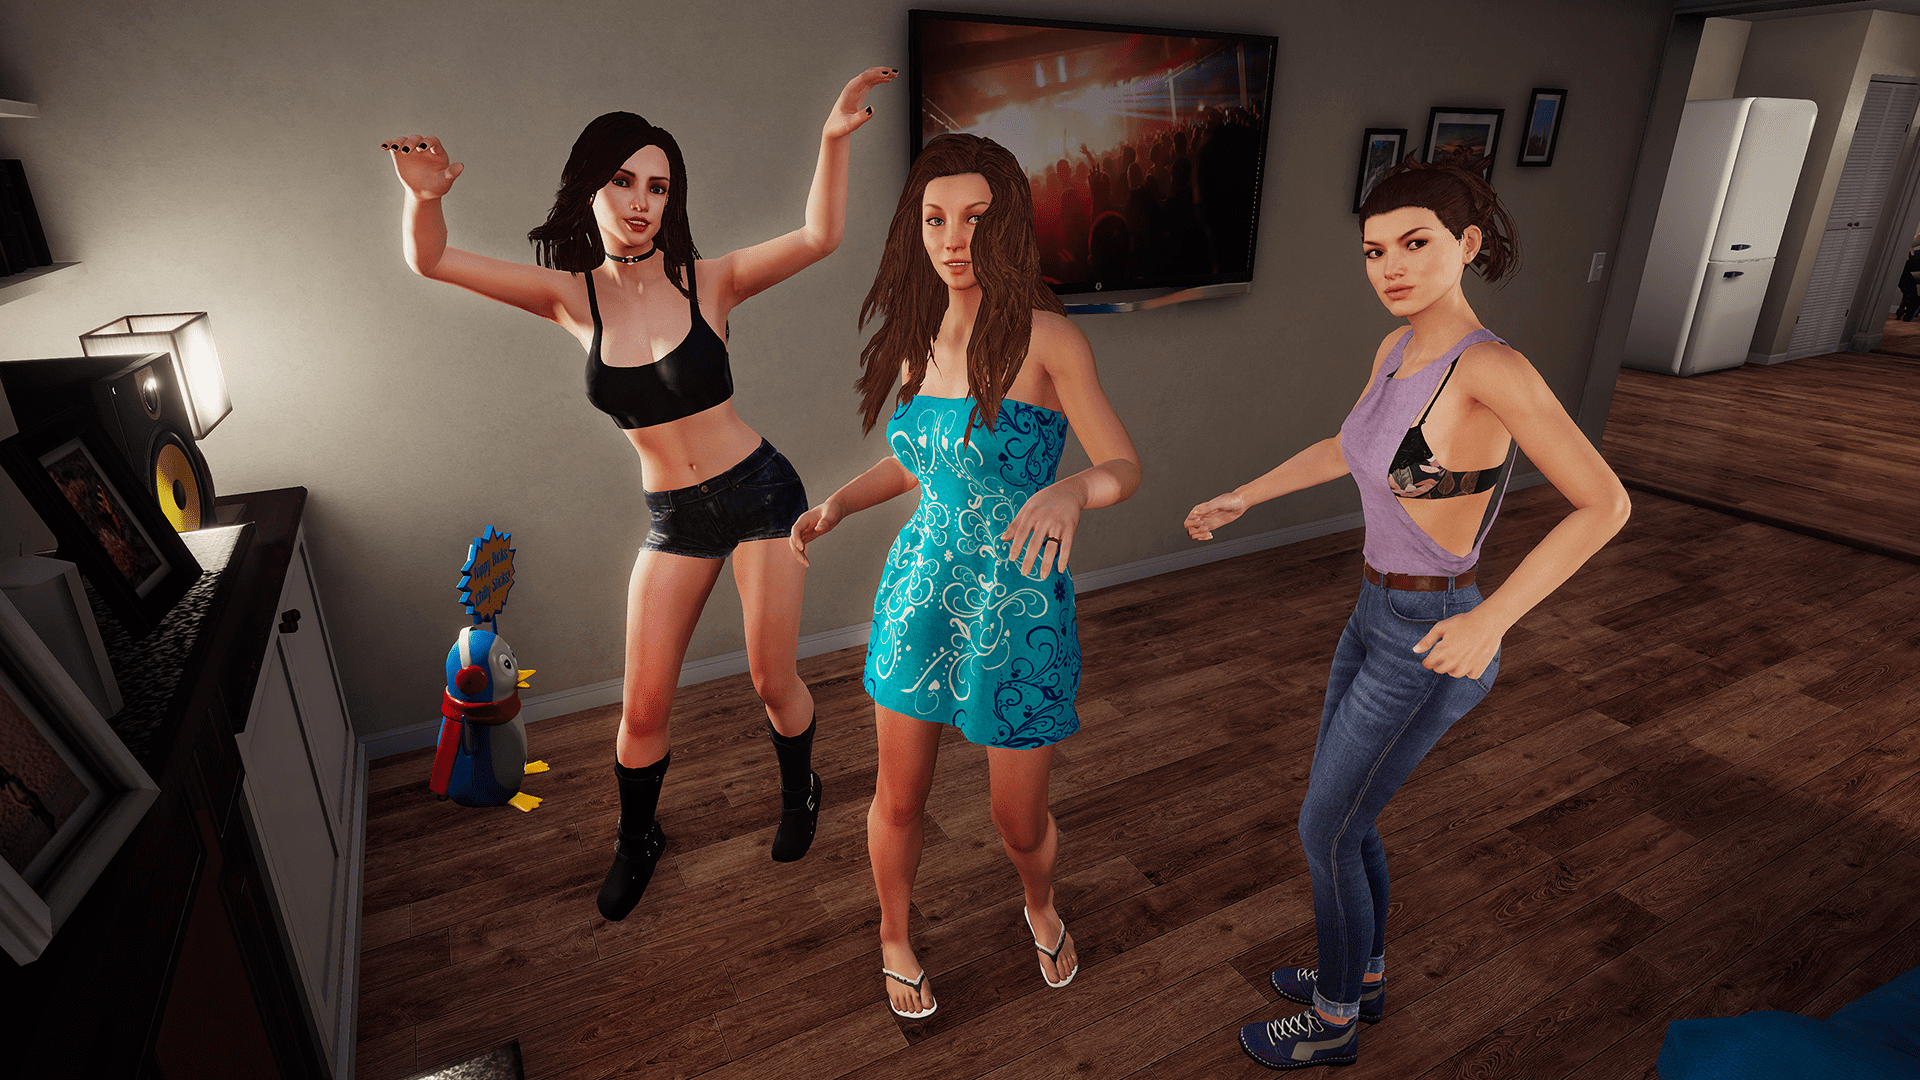 10 Best 18 Adult Games To Play On Pc Updated March 2020 Techquila